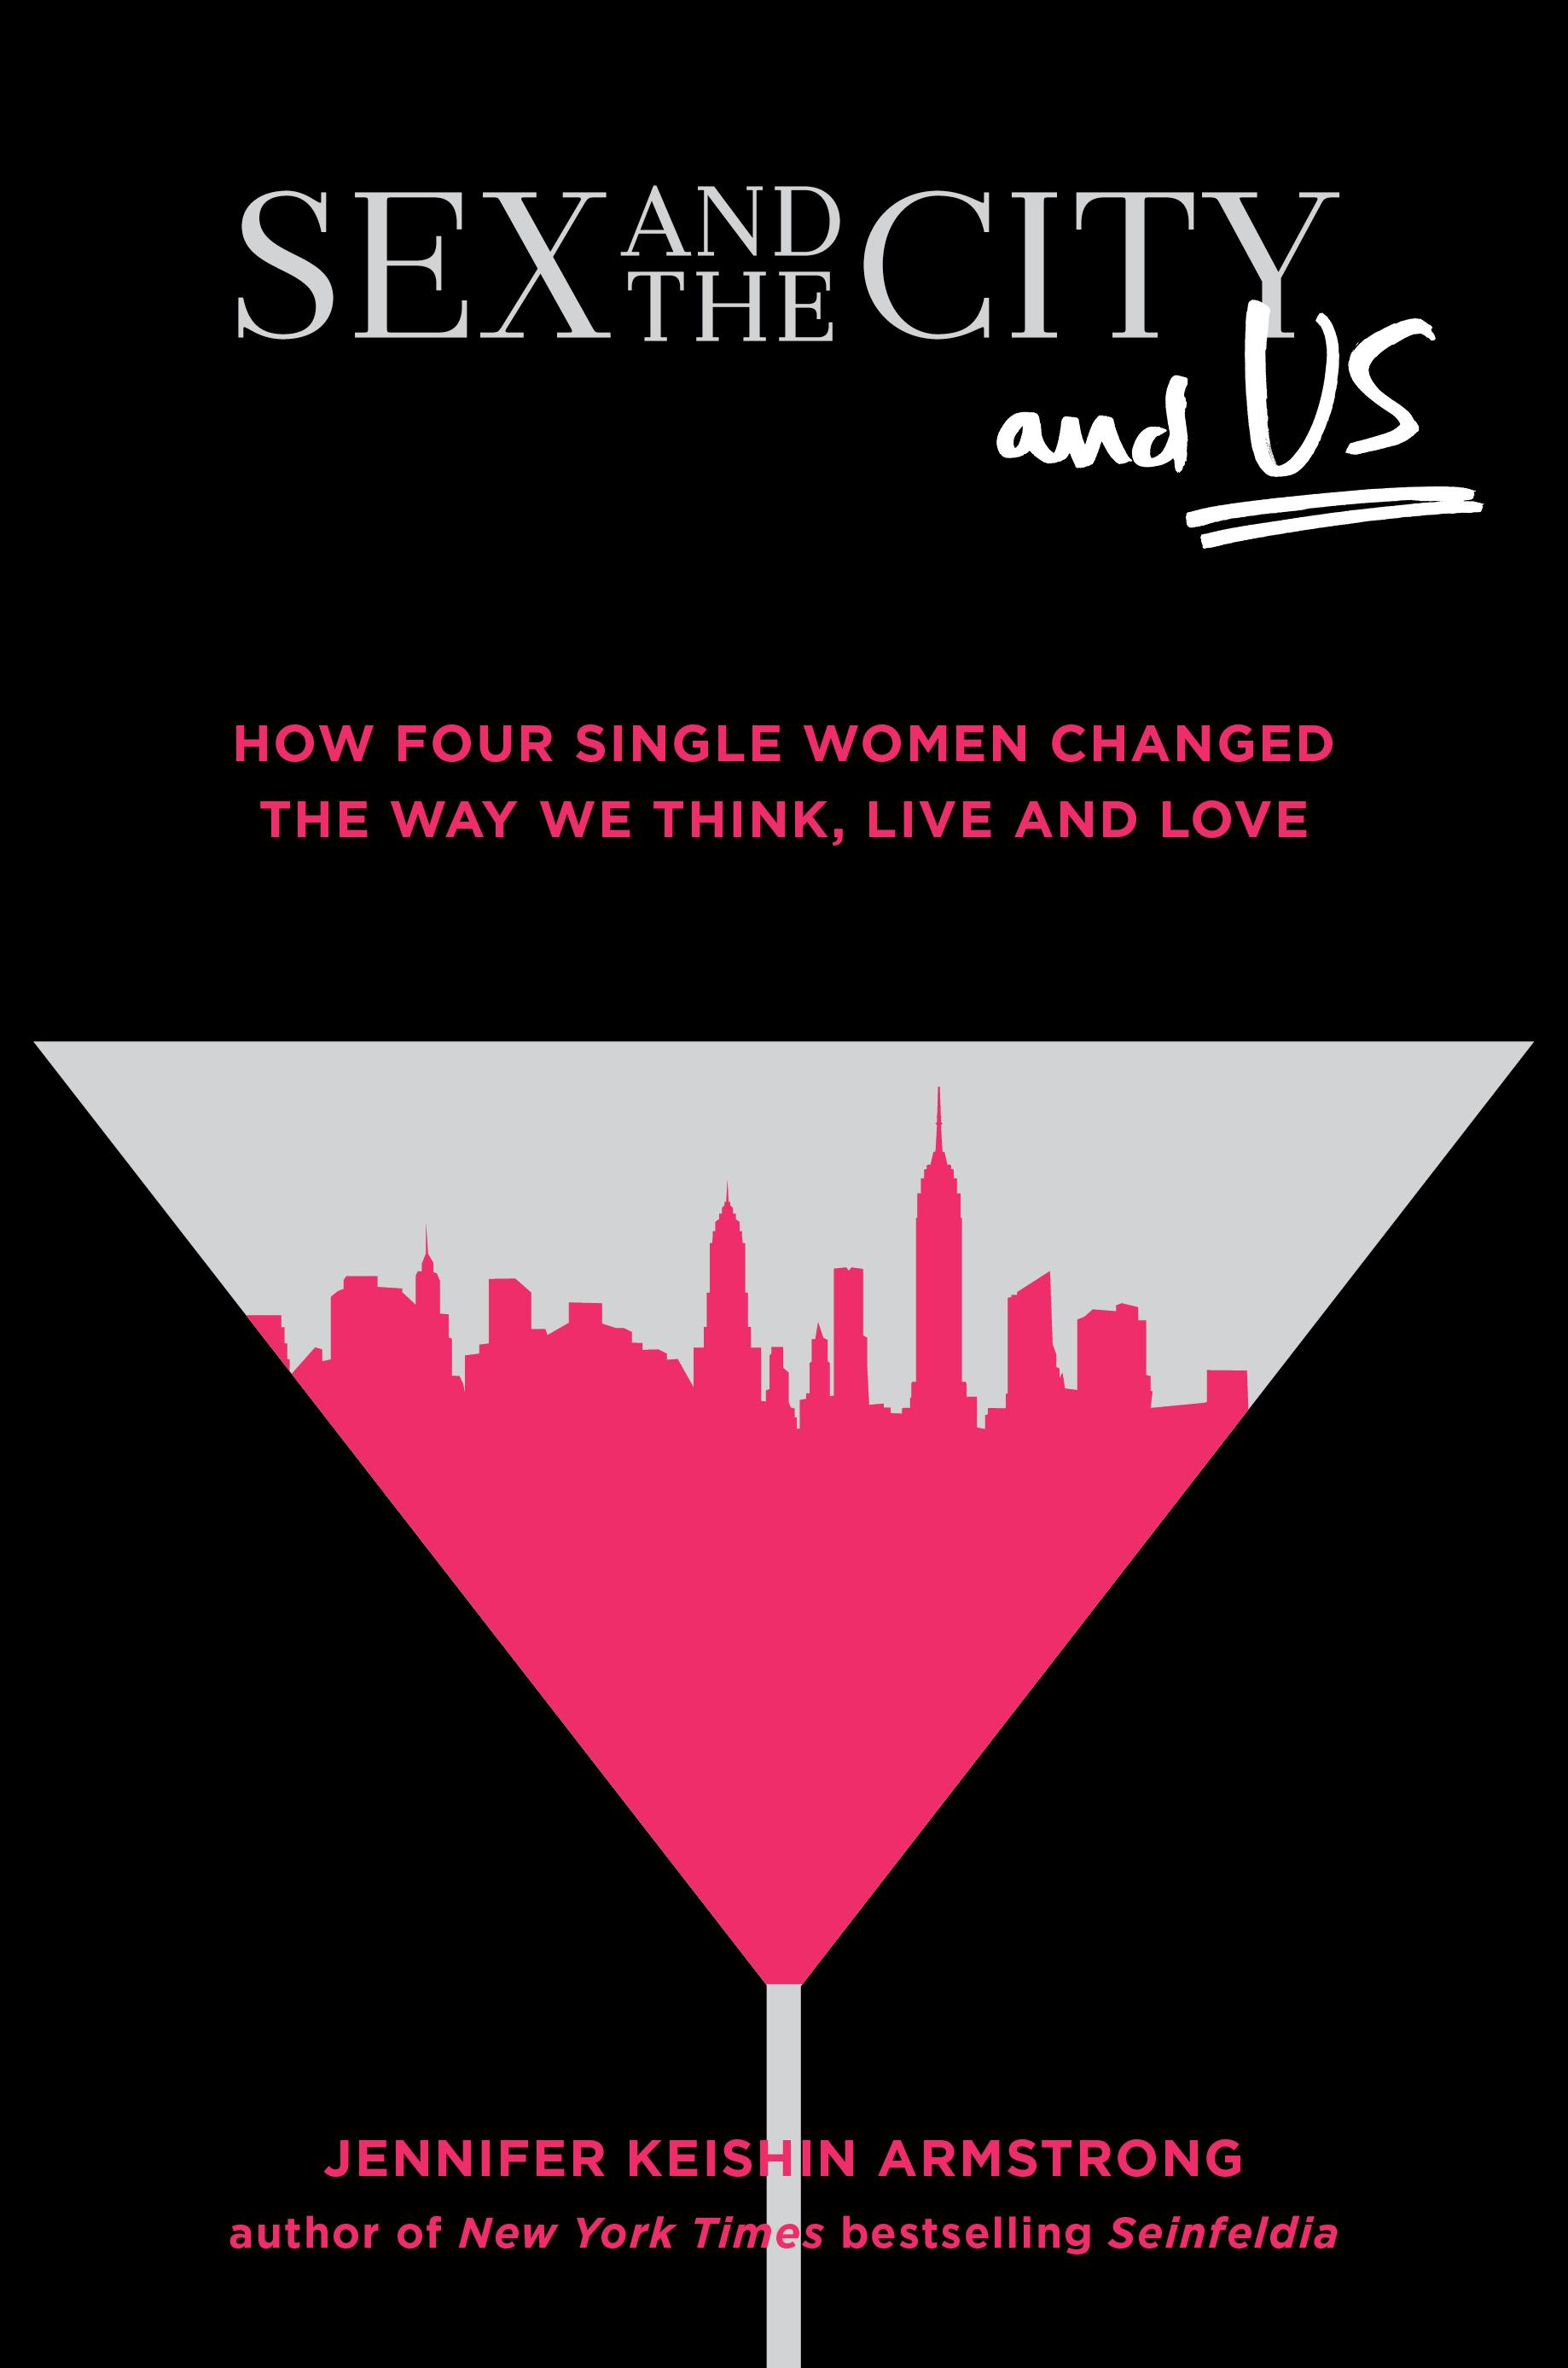 <p>Sex and the City and Us: How Four Single Women Changed the Way We Think, Live, and Love, by Jennifer Keishin Armstrong (Image: Courtesy{&amp;nbsp;}Simon &amp; Schuster) </p>